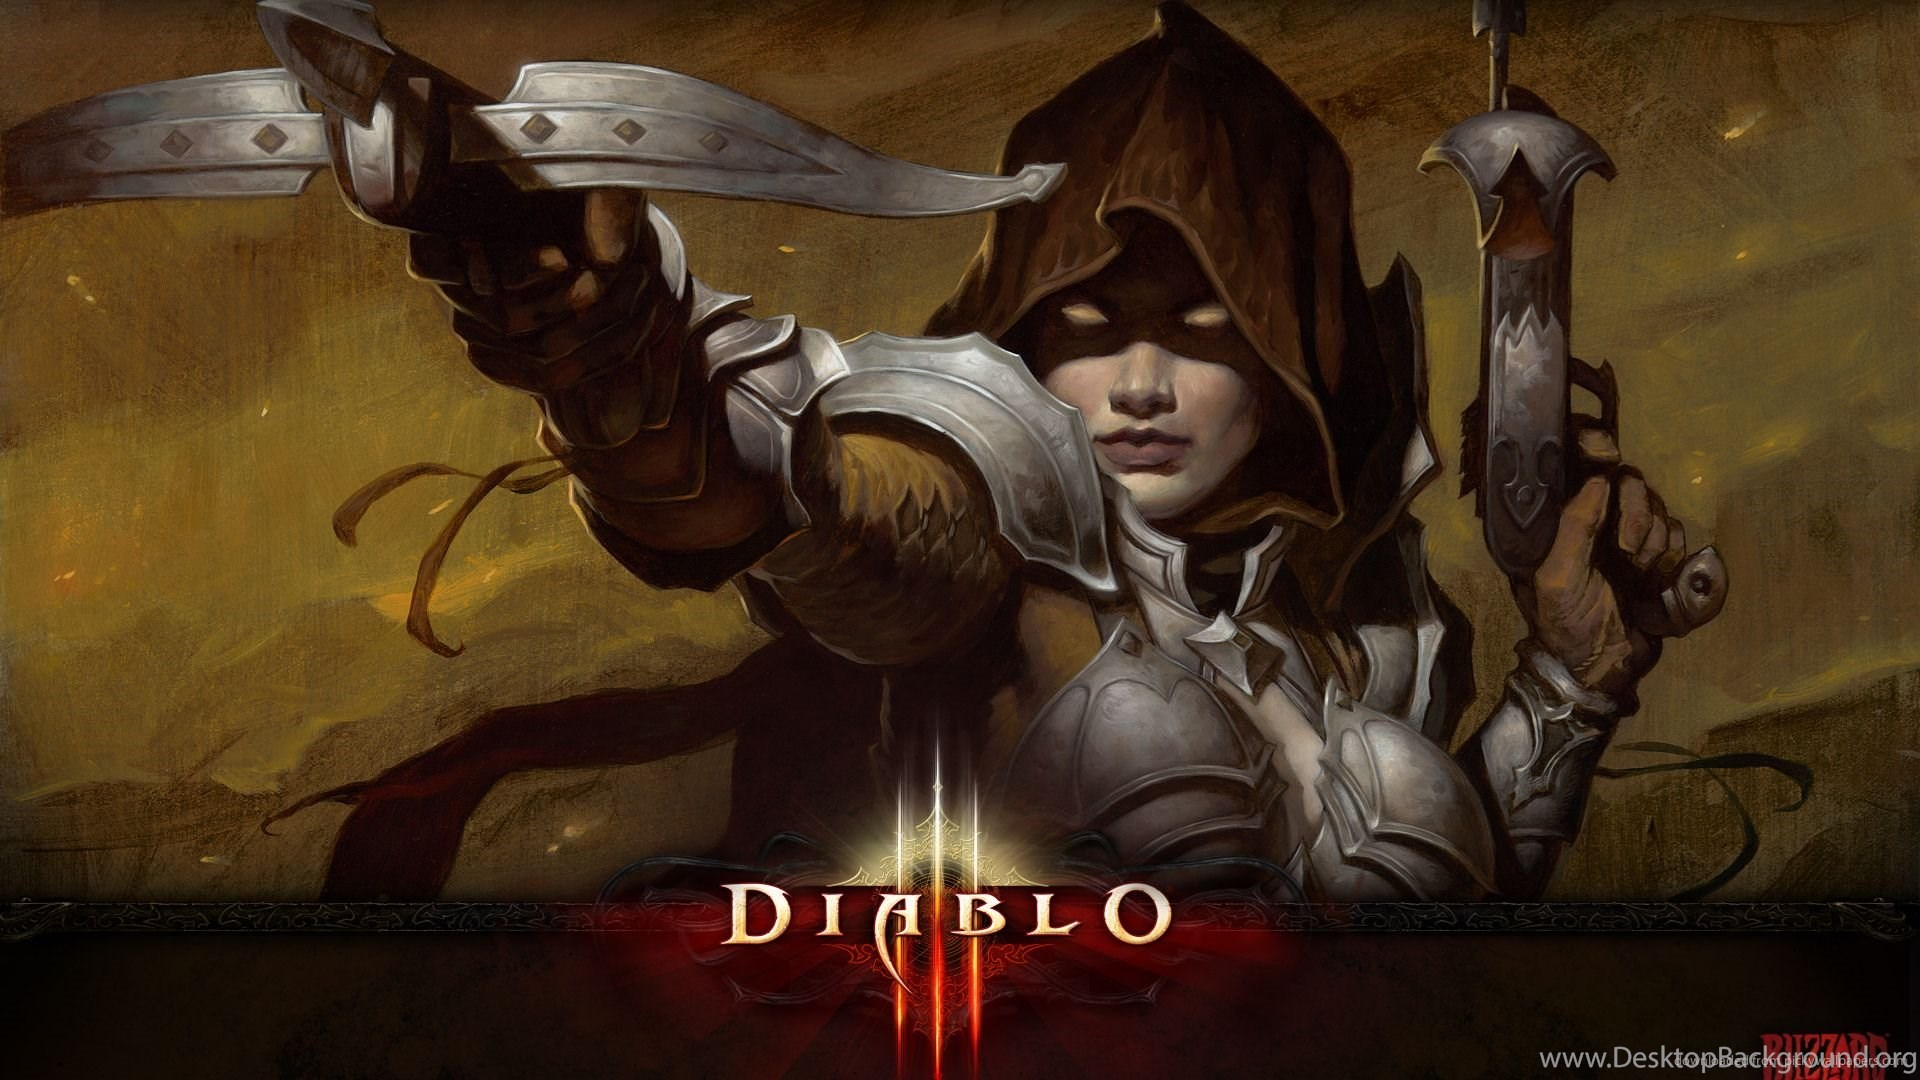 Download 1920x1080 Diablo 3 Unlocked Exclusive Demon Hunter